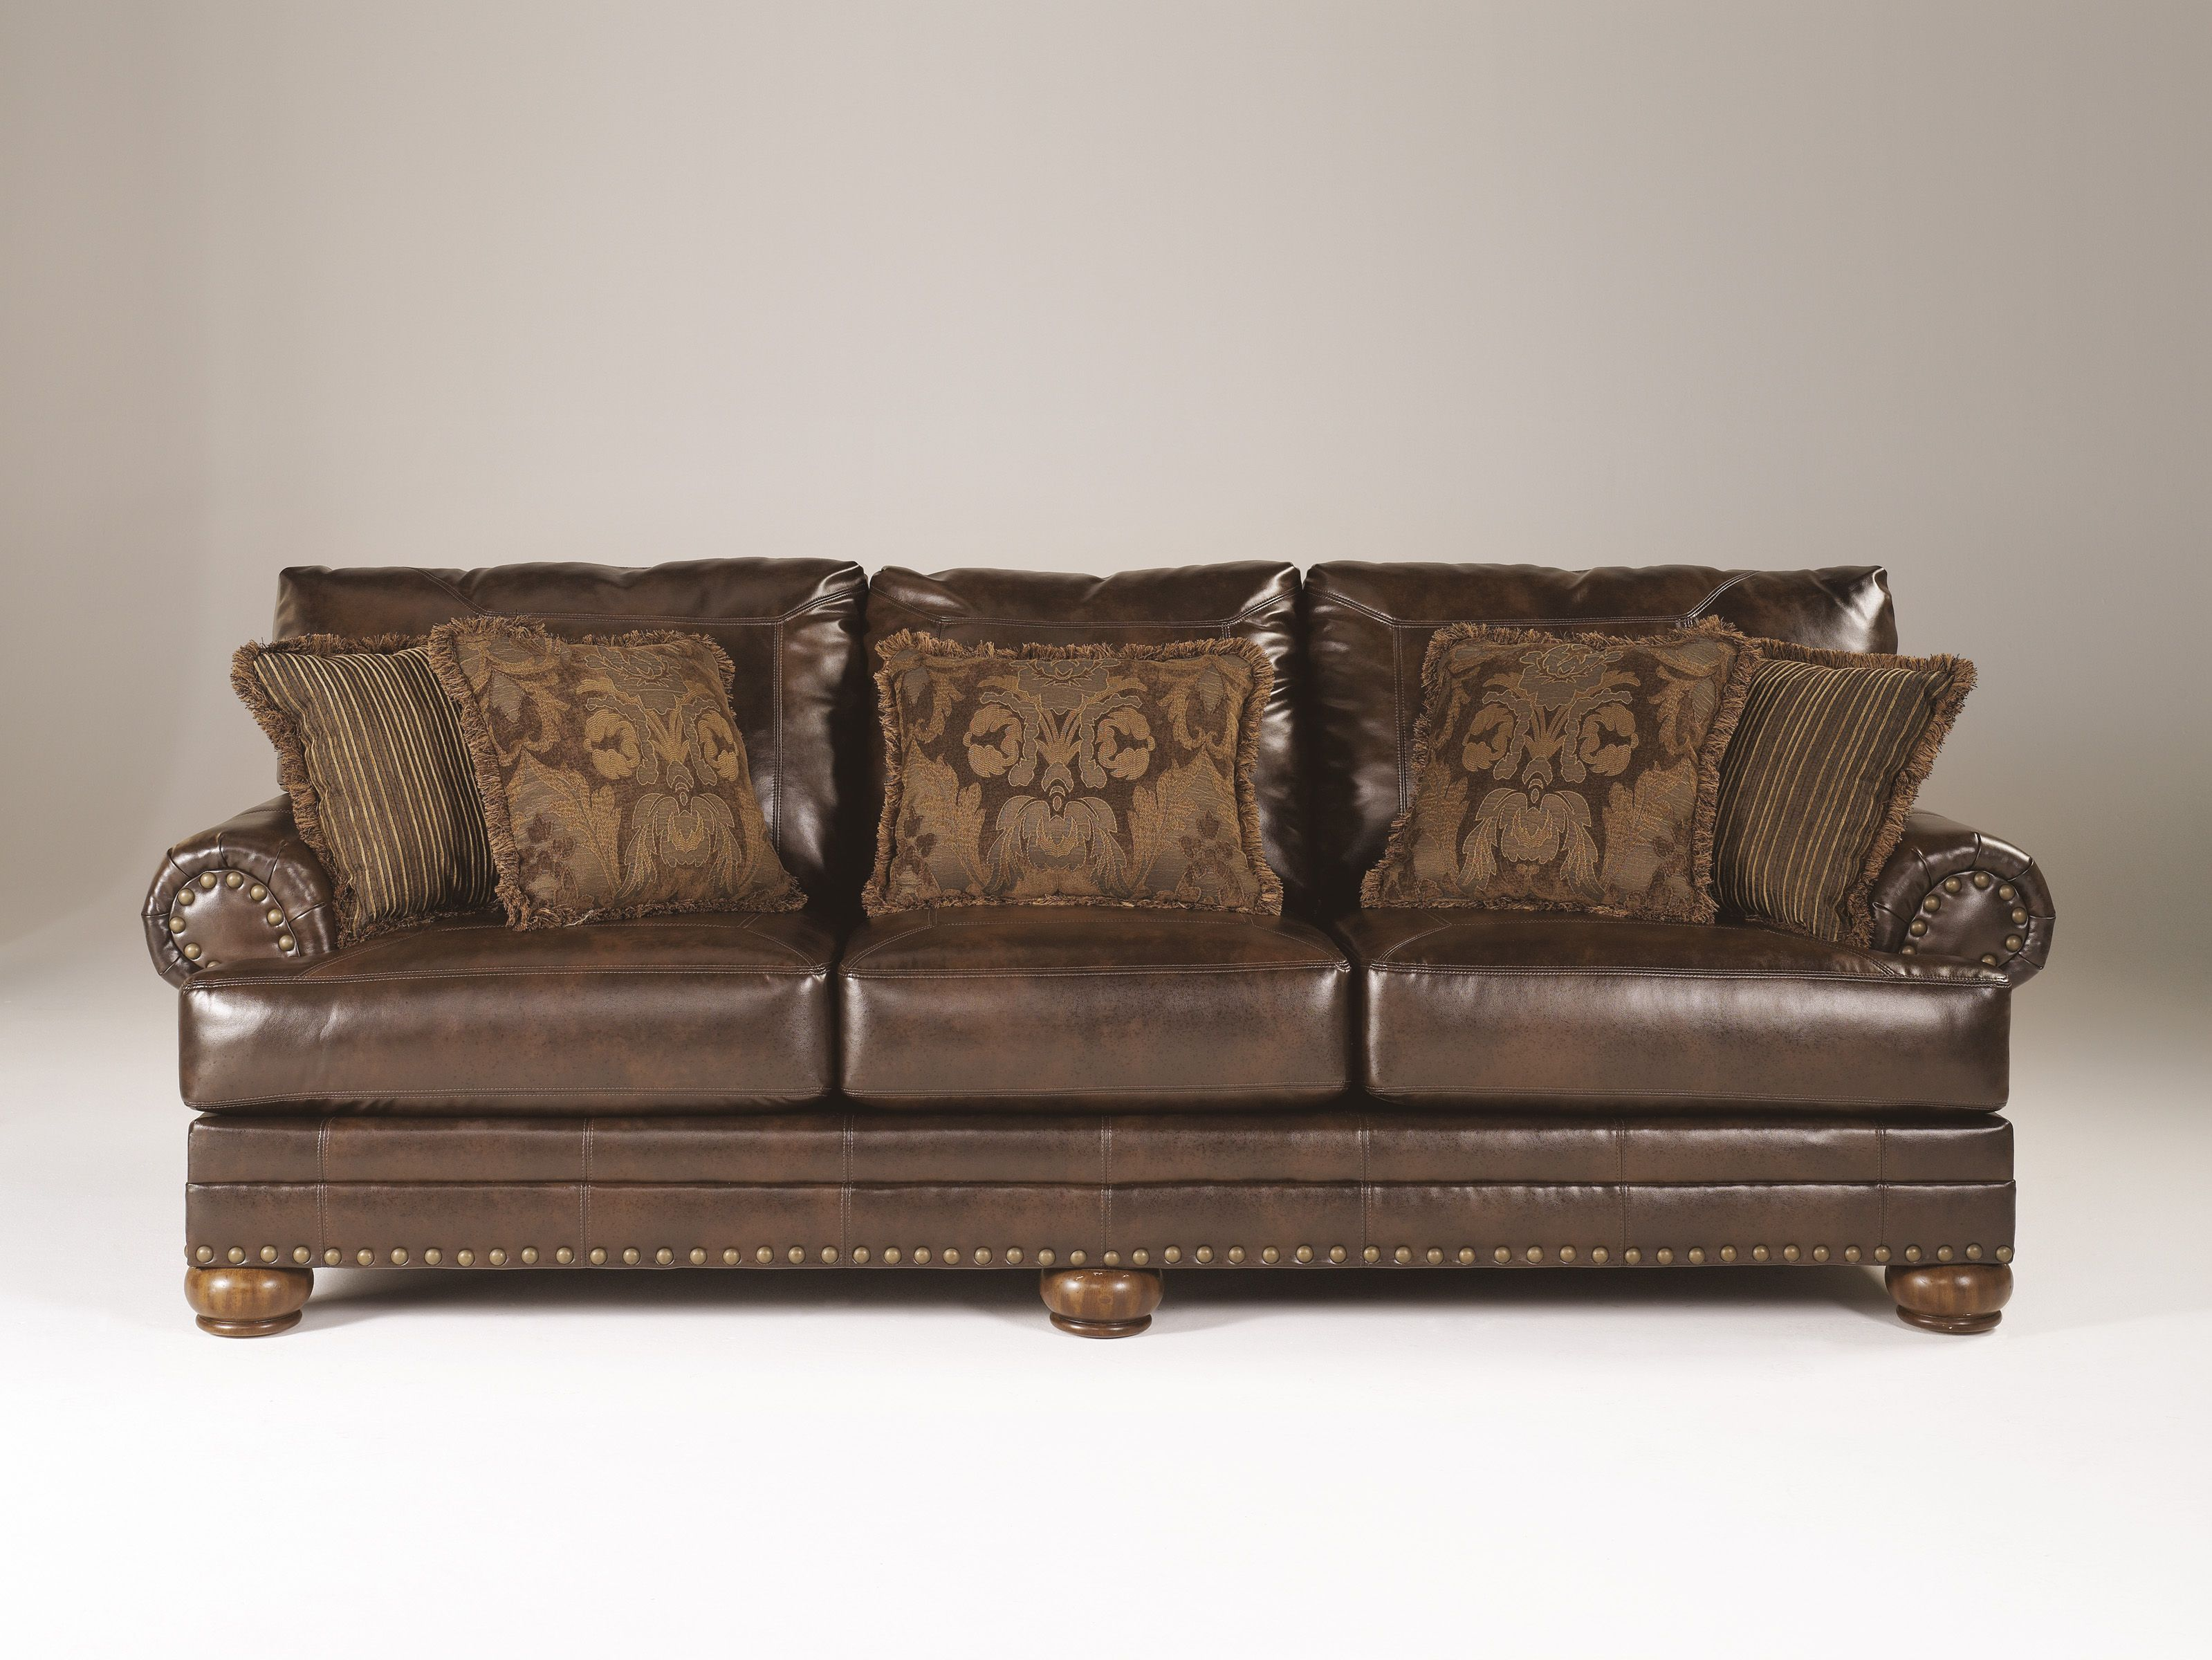 Most sofas run about 87 inches long but this sofa measures a full